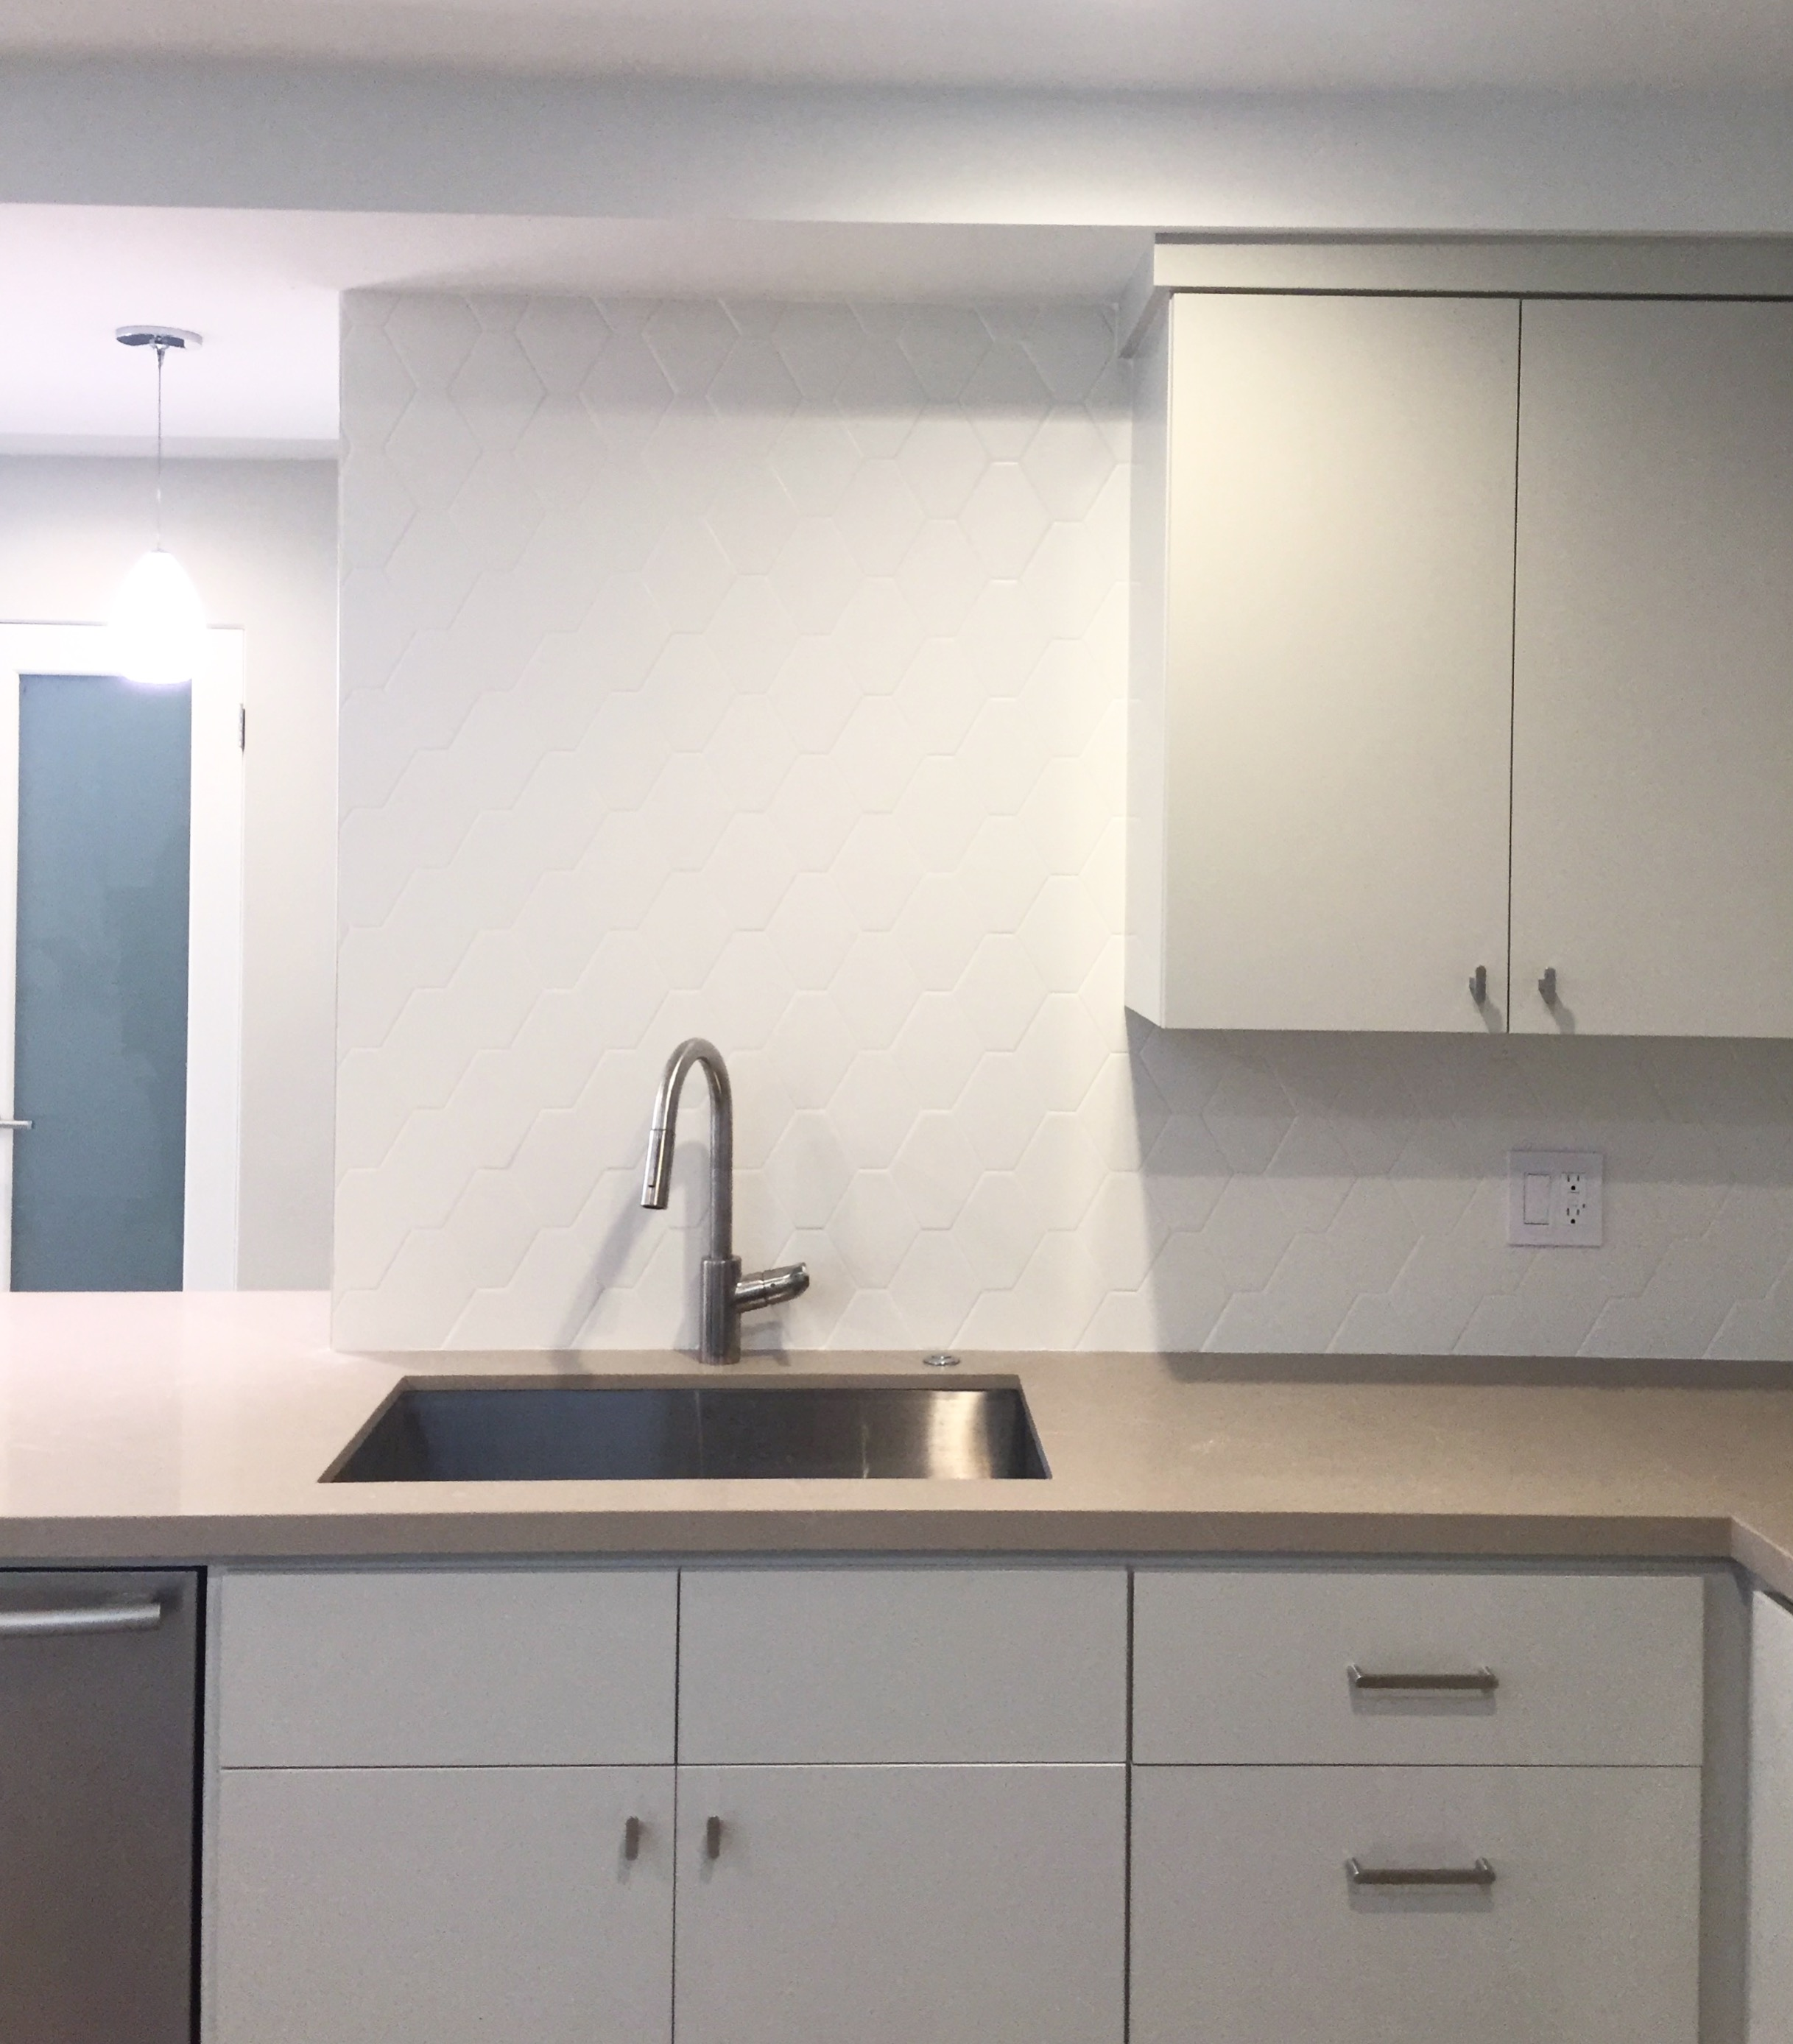 kitchen design, interior design, kitchens, painted cabinets, color, farrow and ball, Dunn Edwards, traditional, midcentury modern,